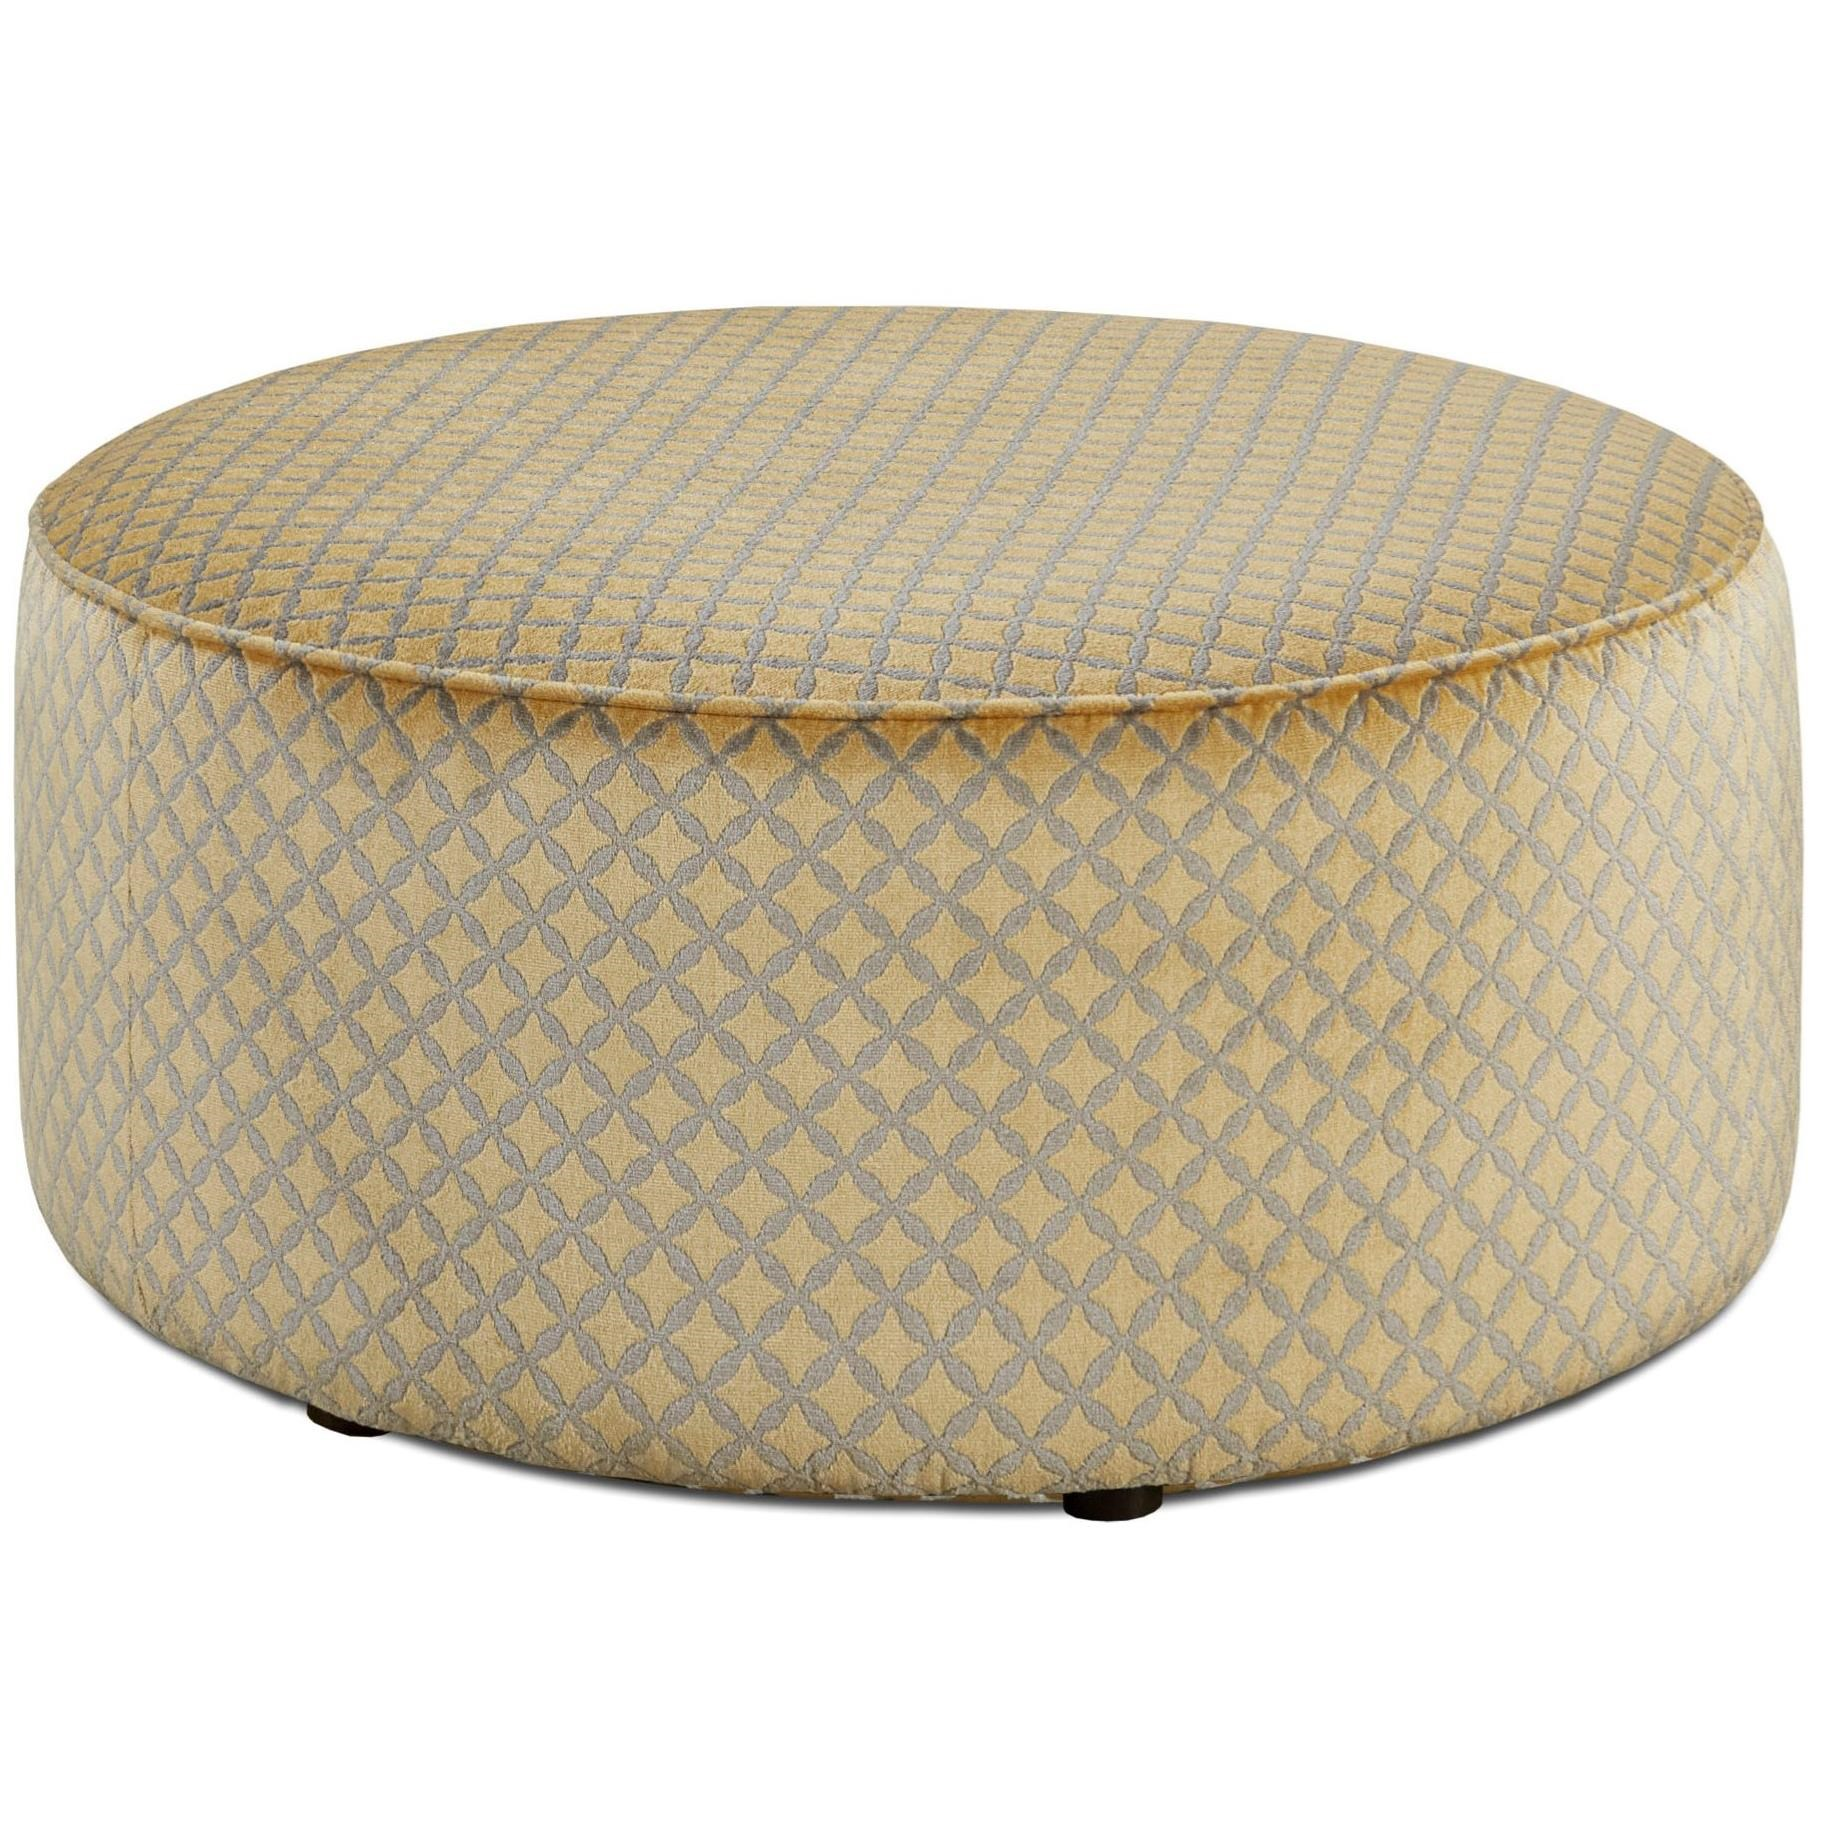 Fusion Furniture 140 Cocktail Ottoman - Item Number: 140Niko Maize